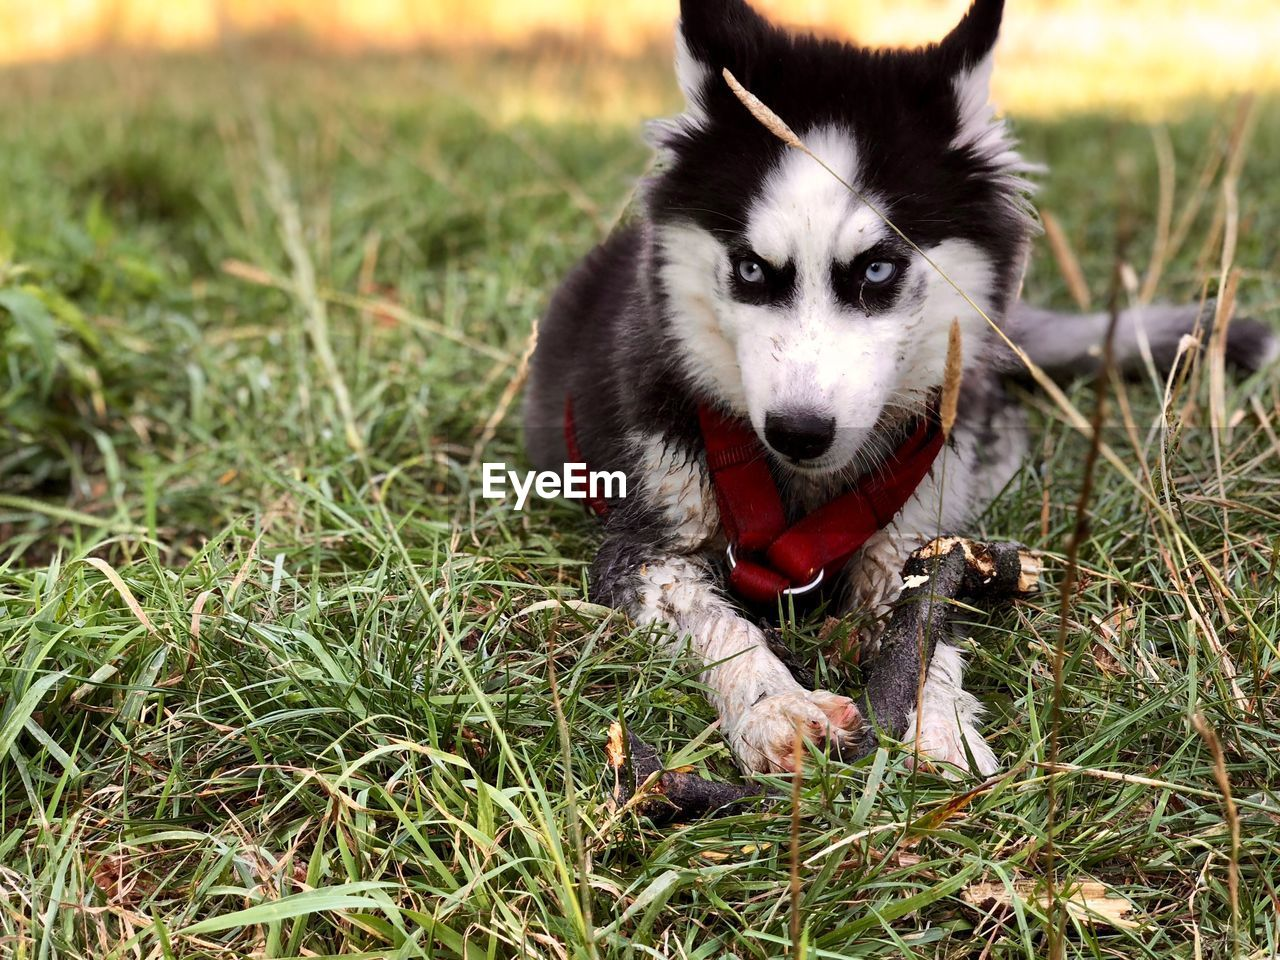 one animal, dog, pets, domestic, canine, animal themes, domestic animals, mammal, animal, grass, vertebrate, field, plant, land, nature, no people, day, portrait, looking at camera, animal body part, mouth open, border collie, animal head